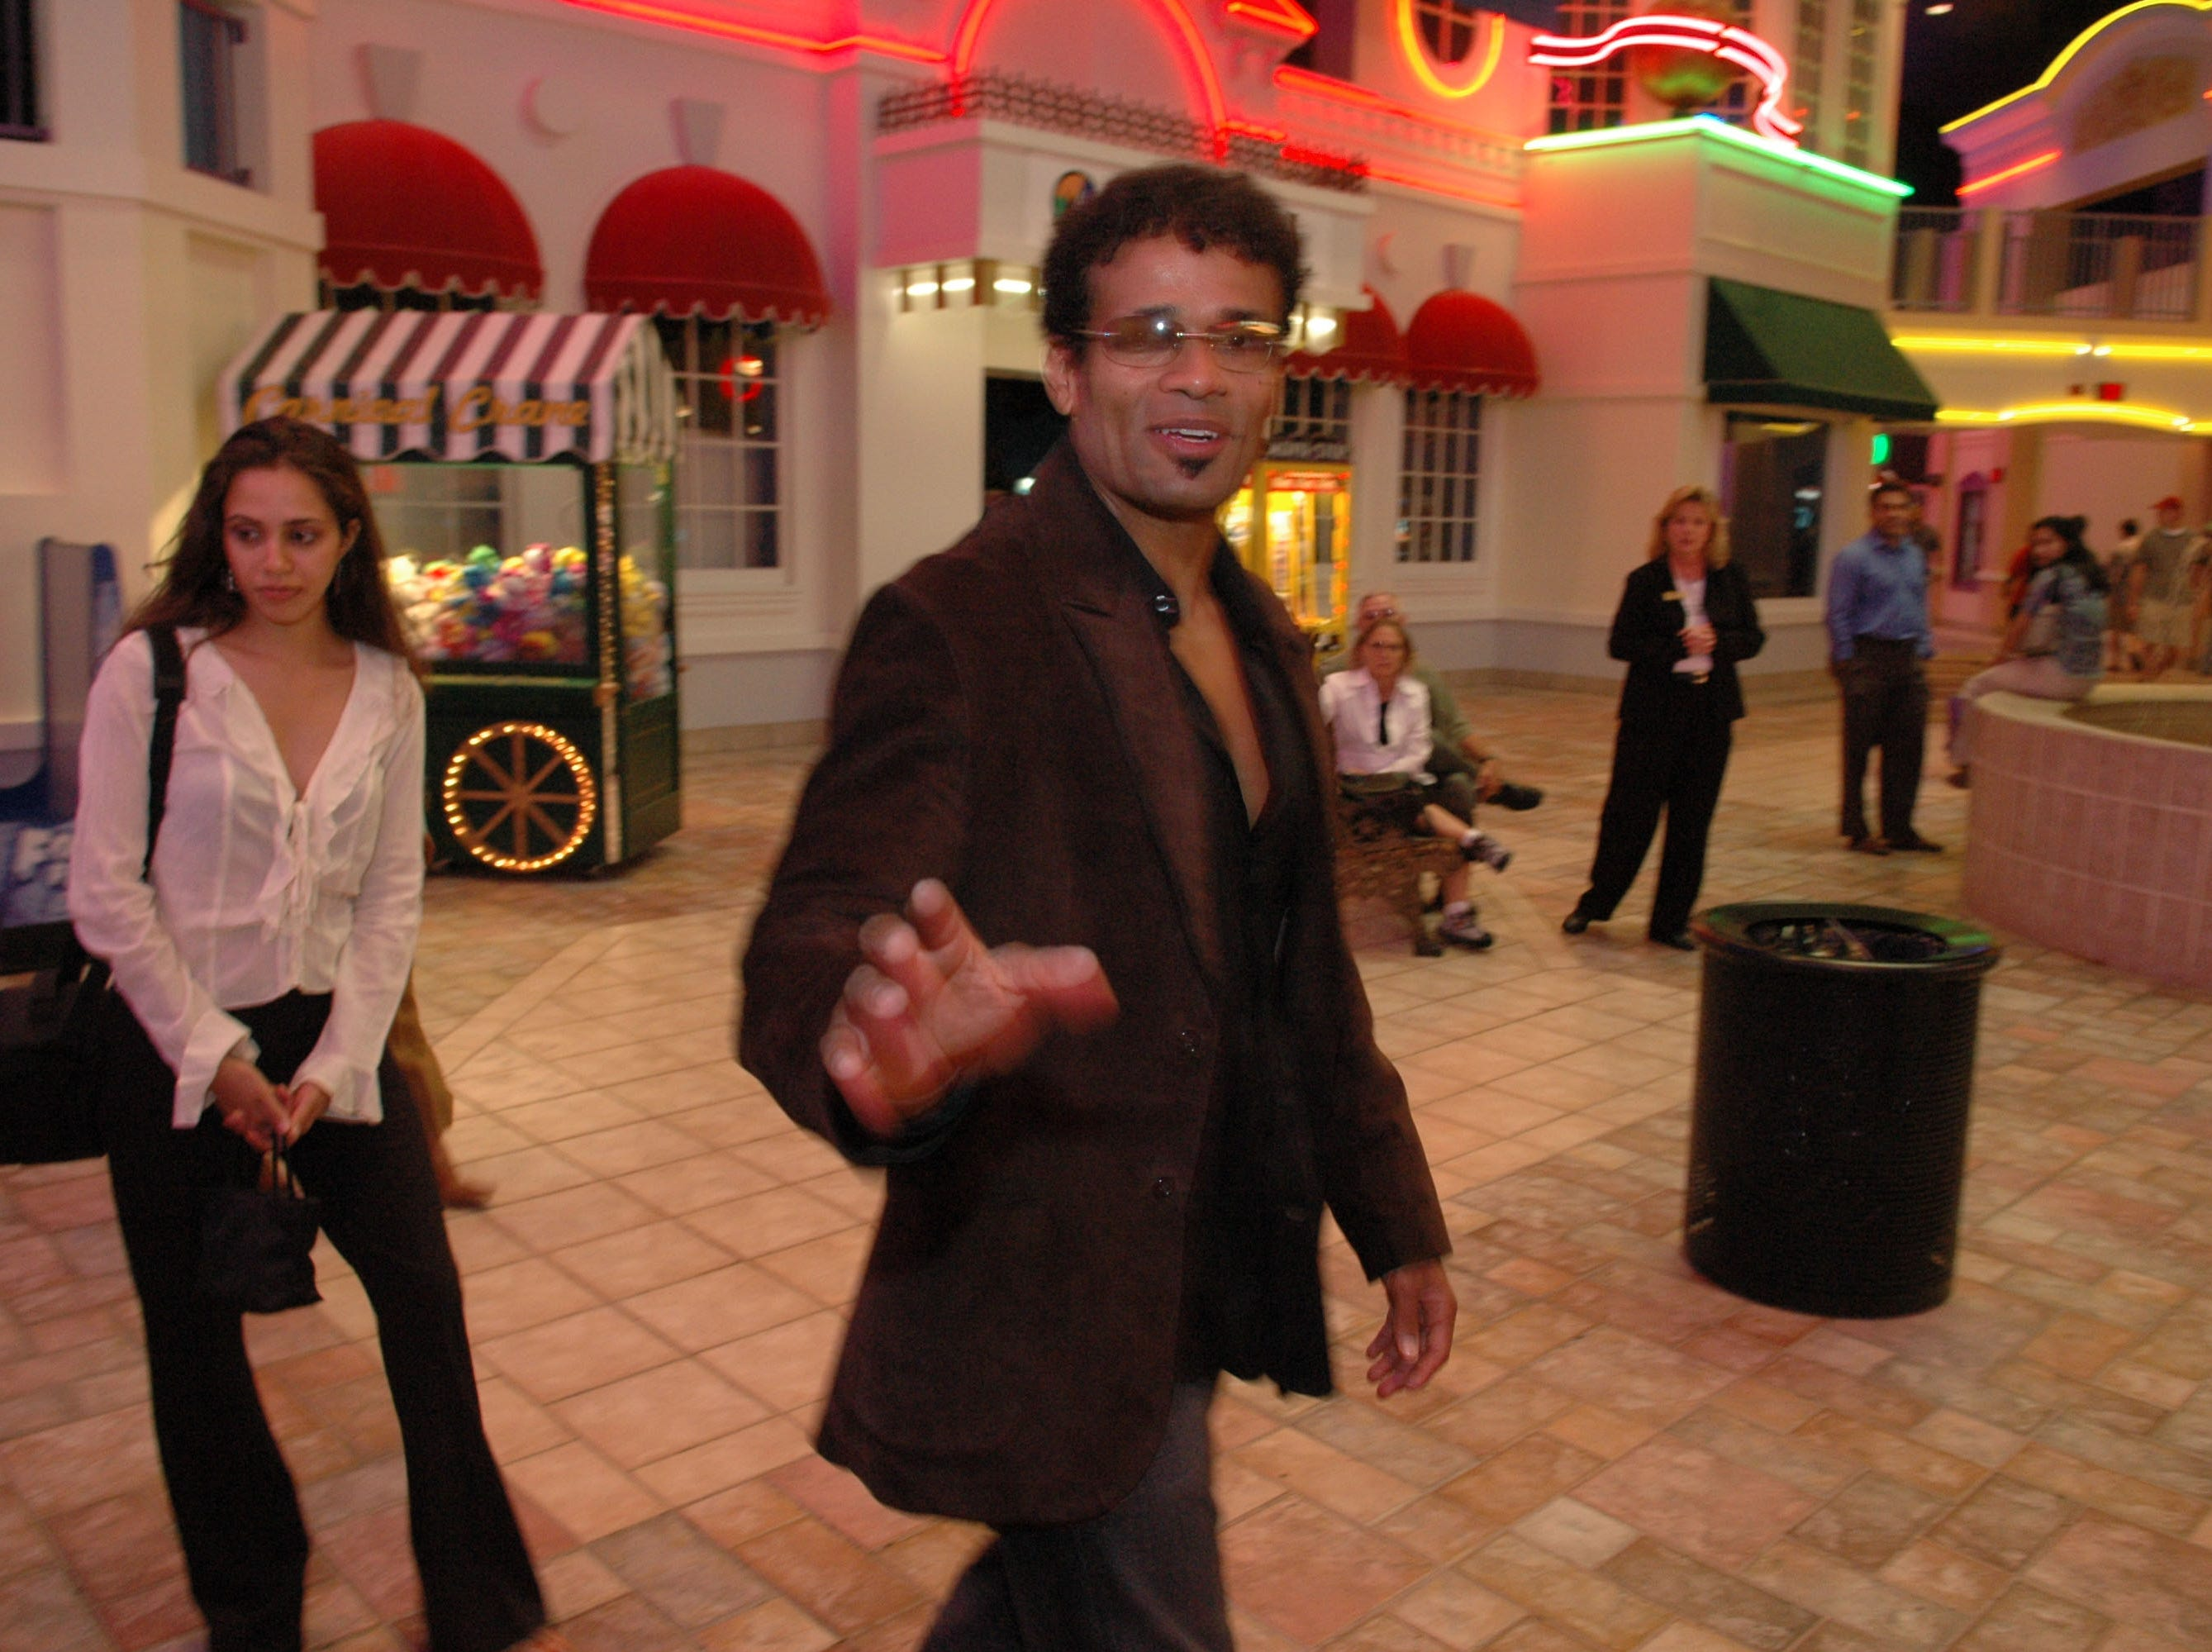 Actor and Director Mario Van Peebles arrives with Kanchan Kurichh, left,for the Knoxville premiere of his new movie Baadasssss, at Regal West Town Mall Cinema Thursday night during the Inaugural African American Film Festival. 8/16/2004